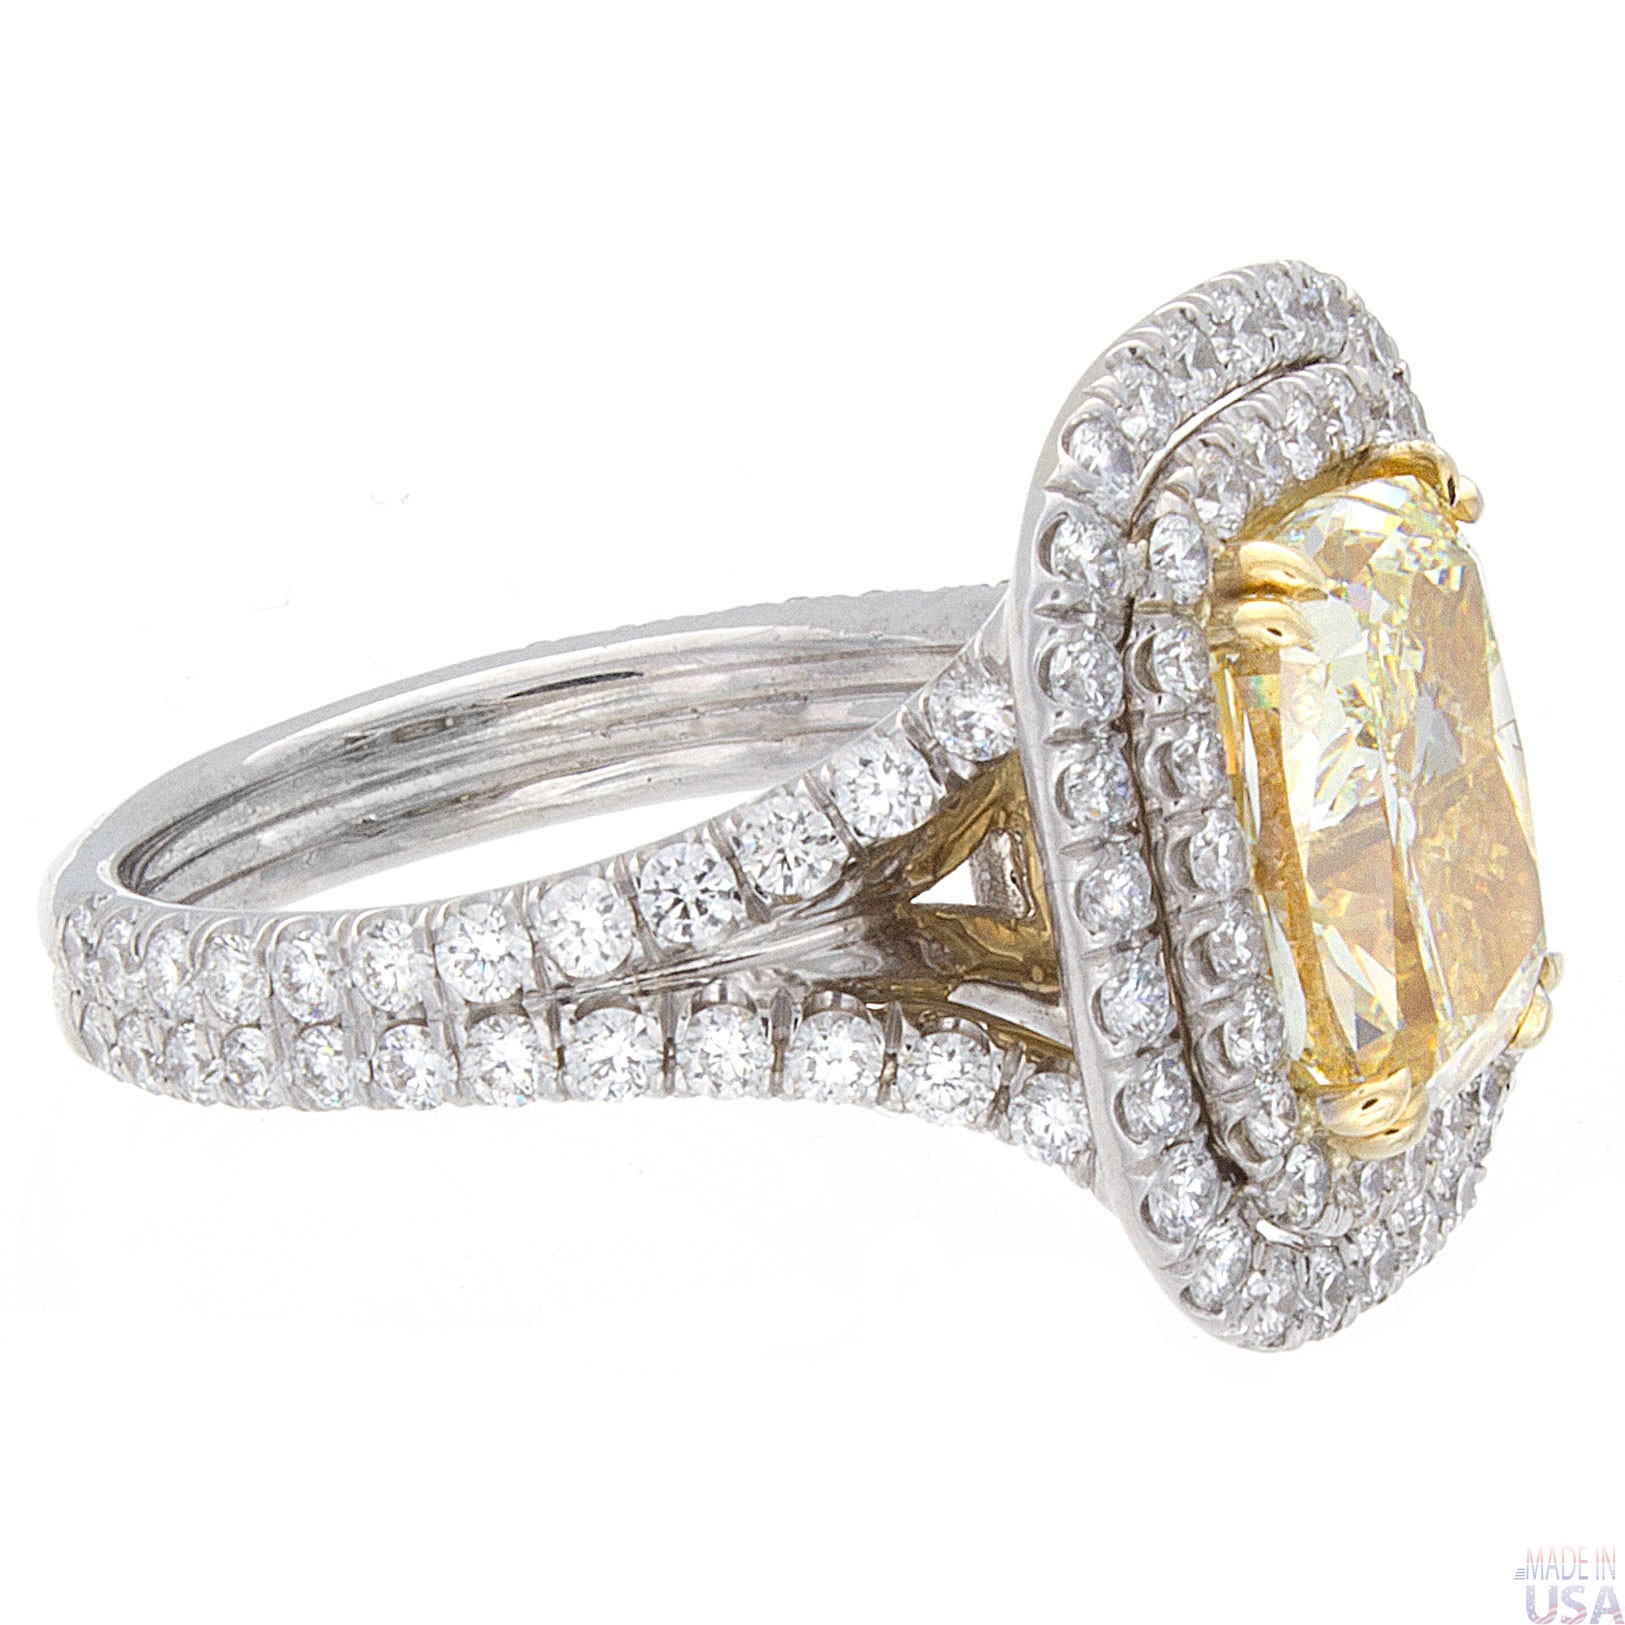 5 45ct Cushion Cut Fancy Yellow Certified Diamond Engagement Ring Halo Pavé